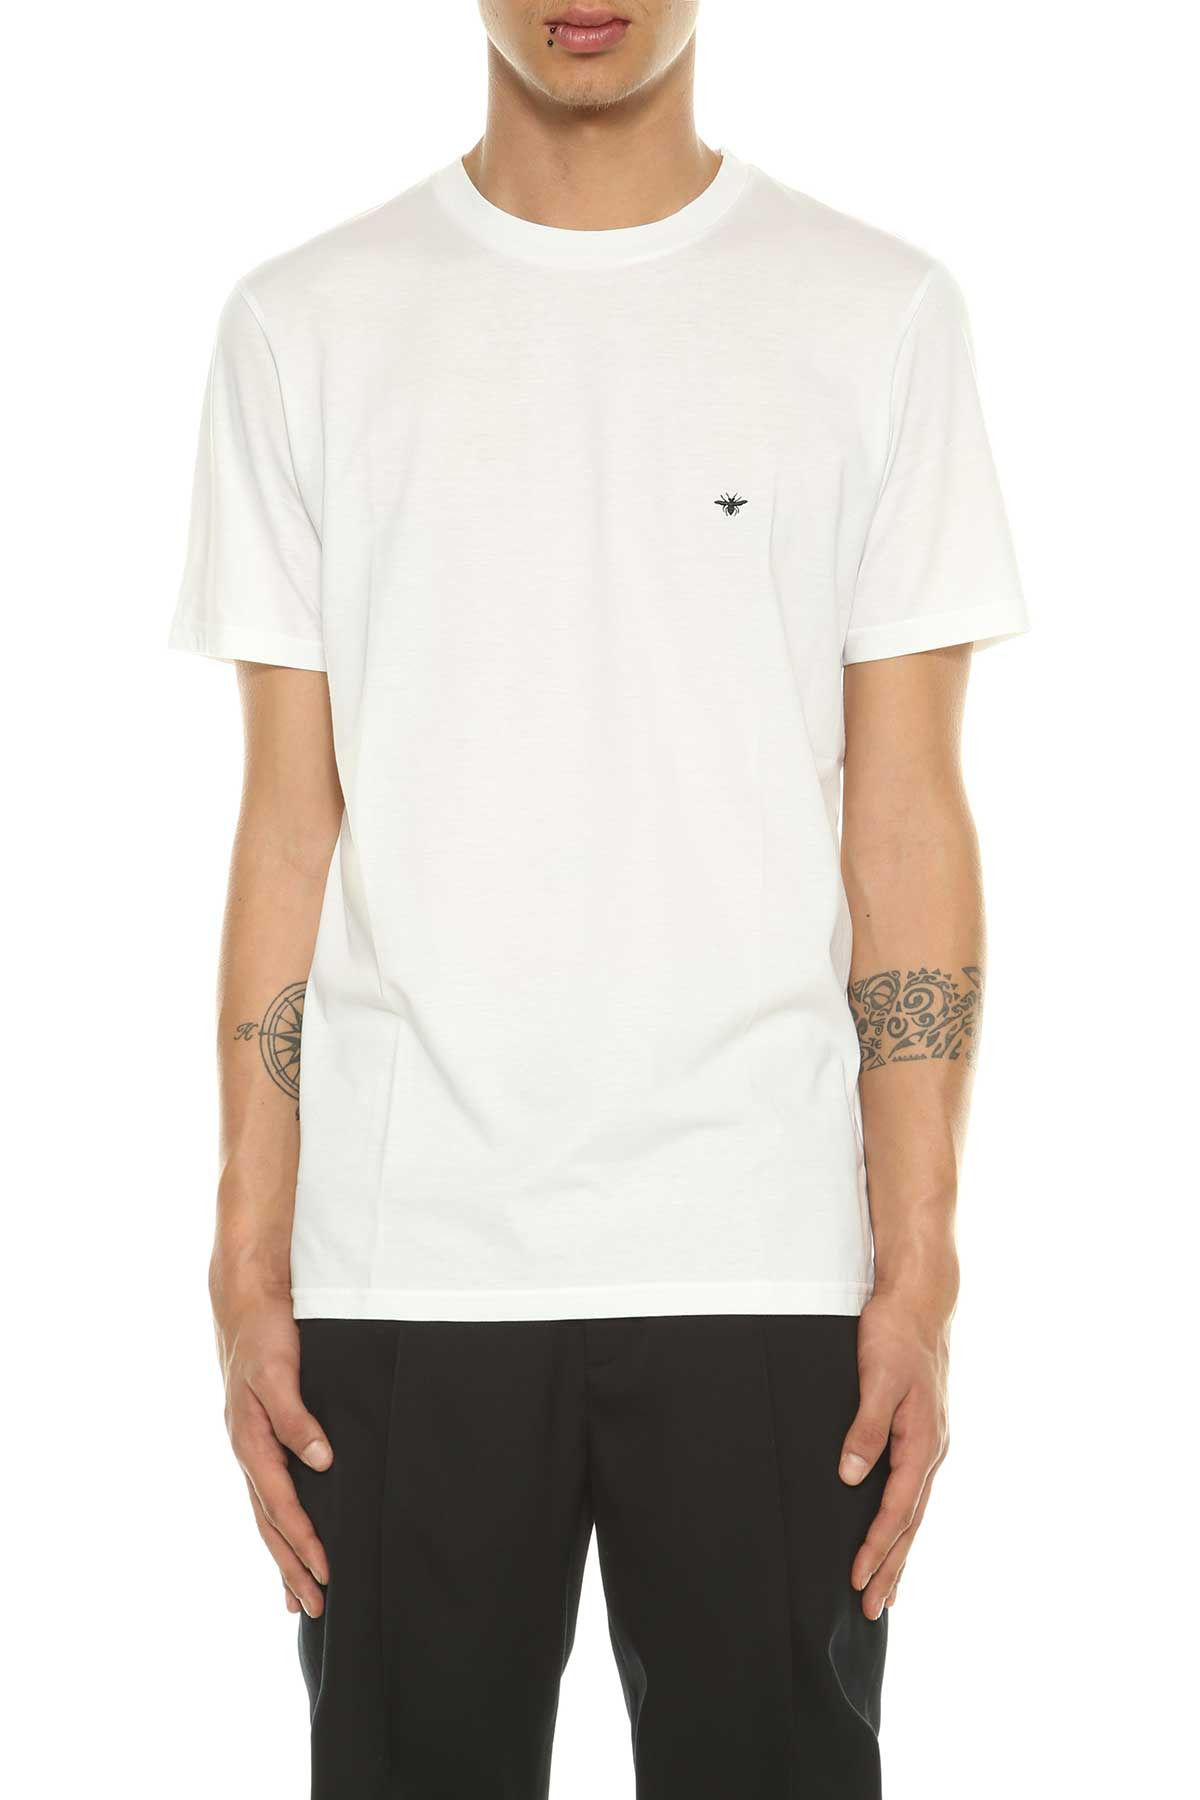 Dior Homme T-shirt With Bee